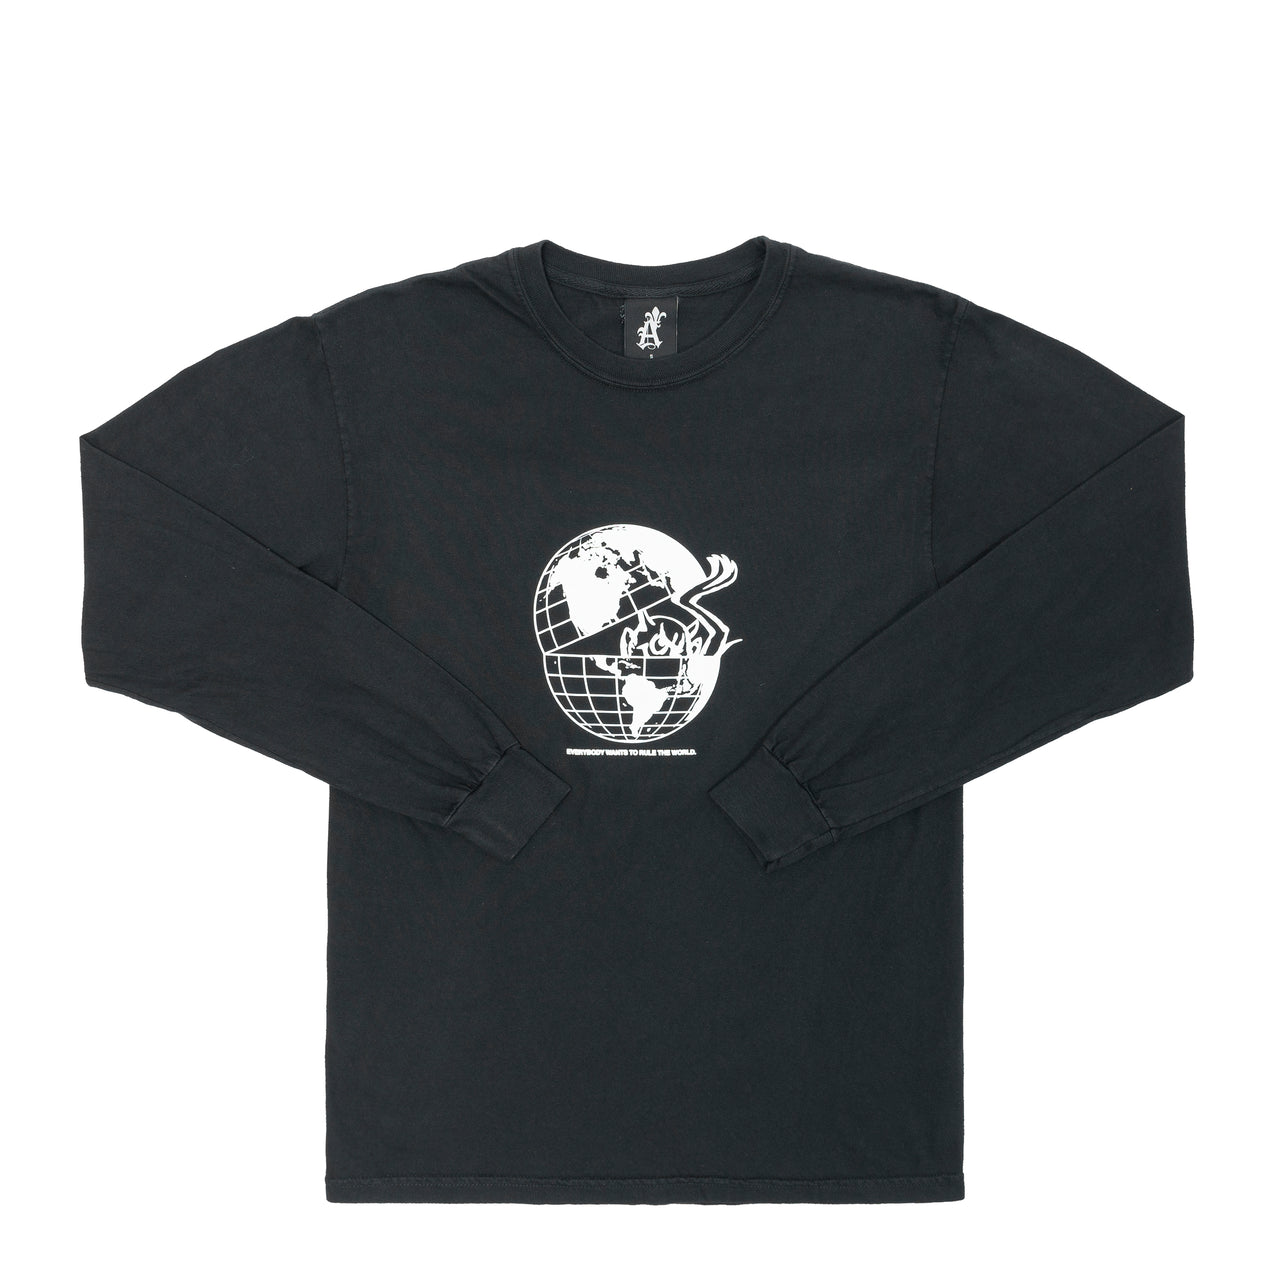 RULE THE WORLD LONG SLEEVE TEE